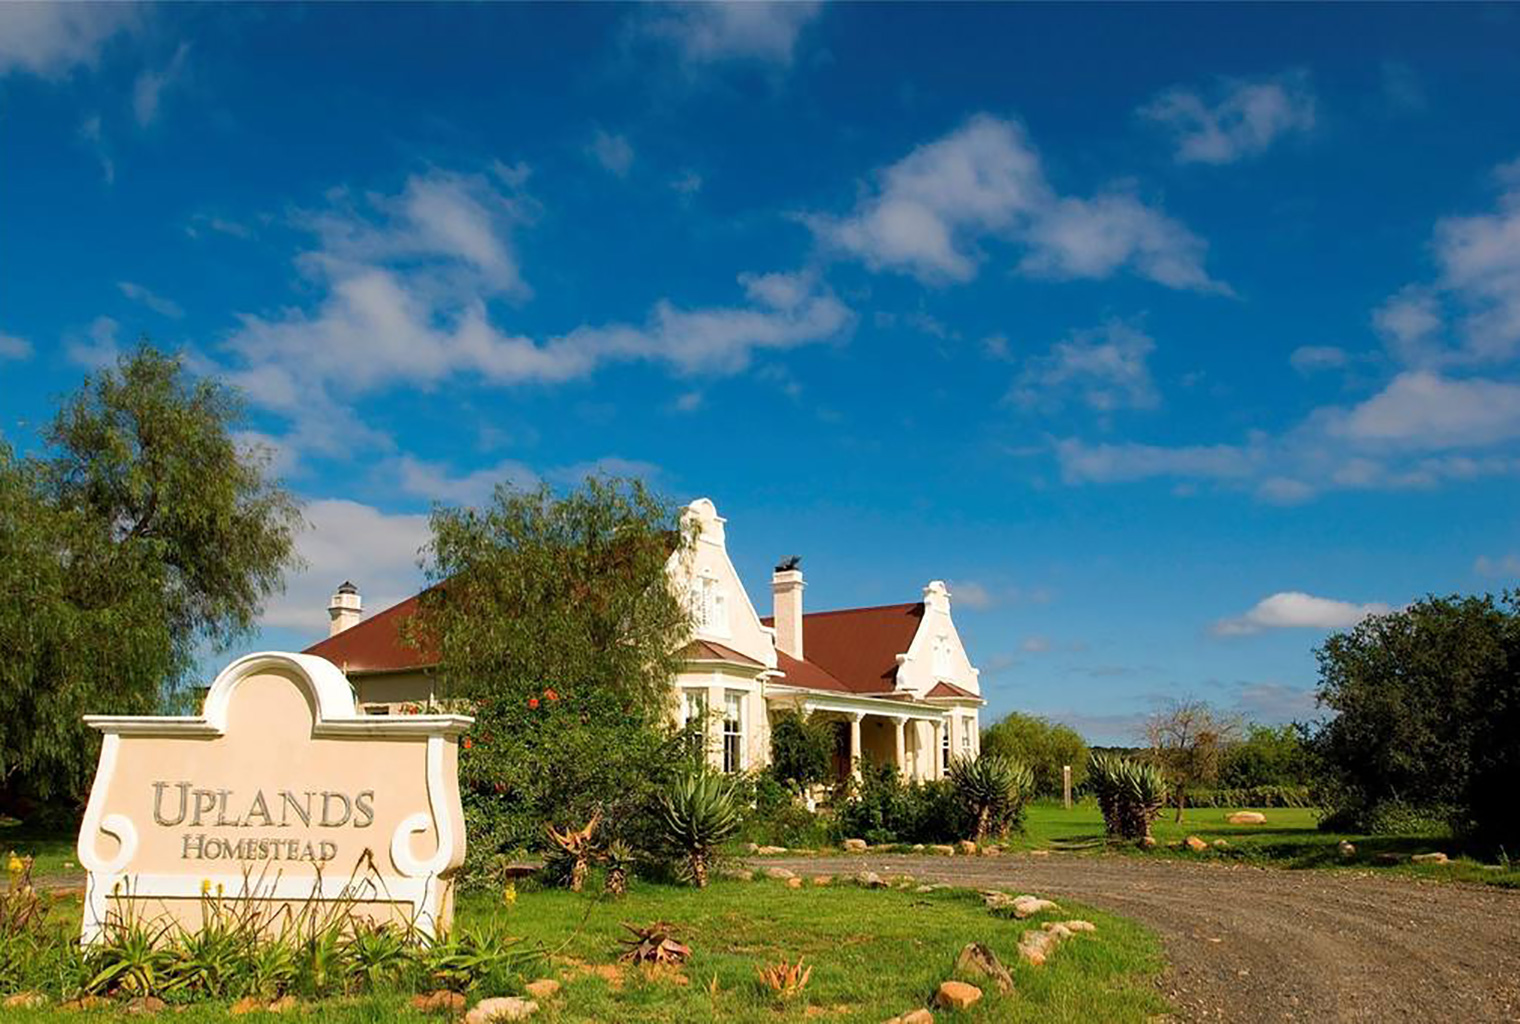 Uplands-Homestead-South-Africa-Exterior-Sign